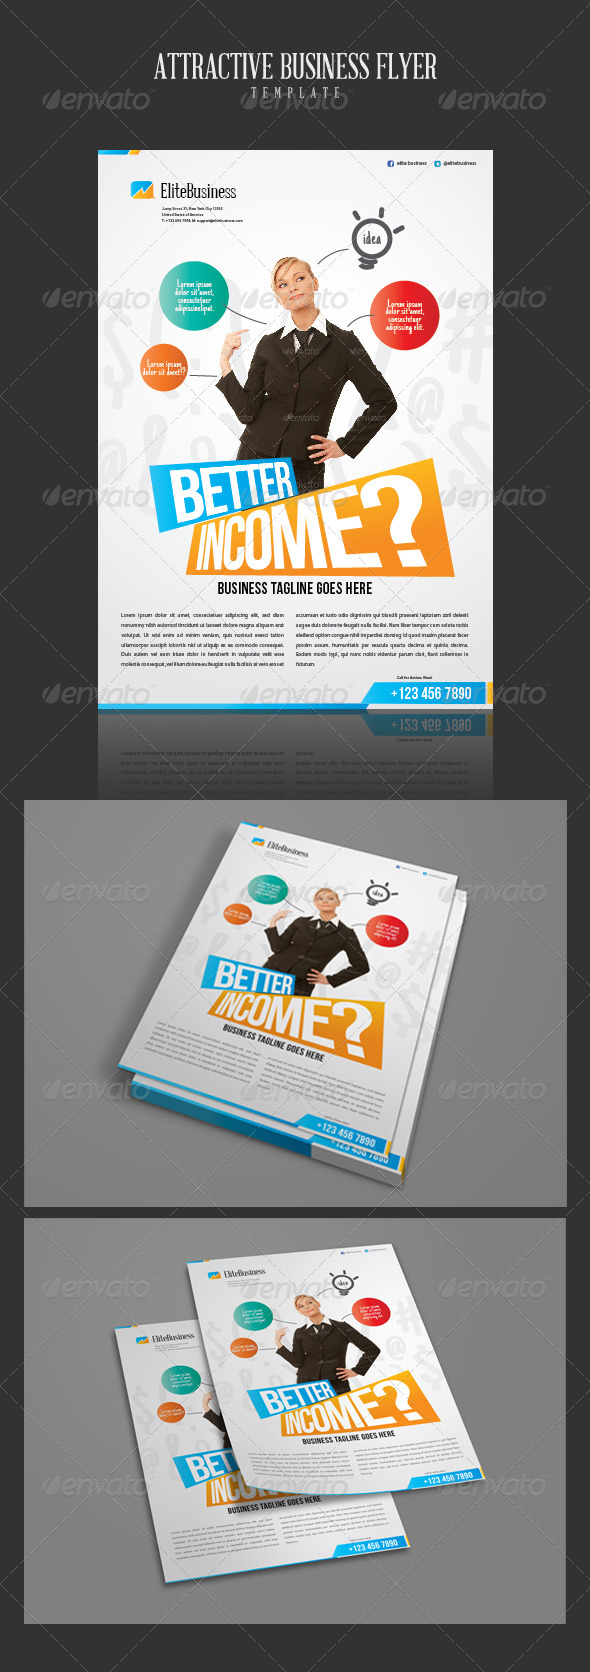 Attractive Business Flyer Template - Corporate Flyers